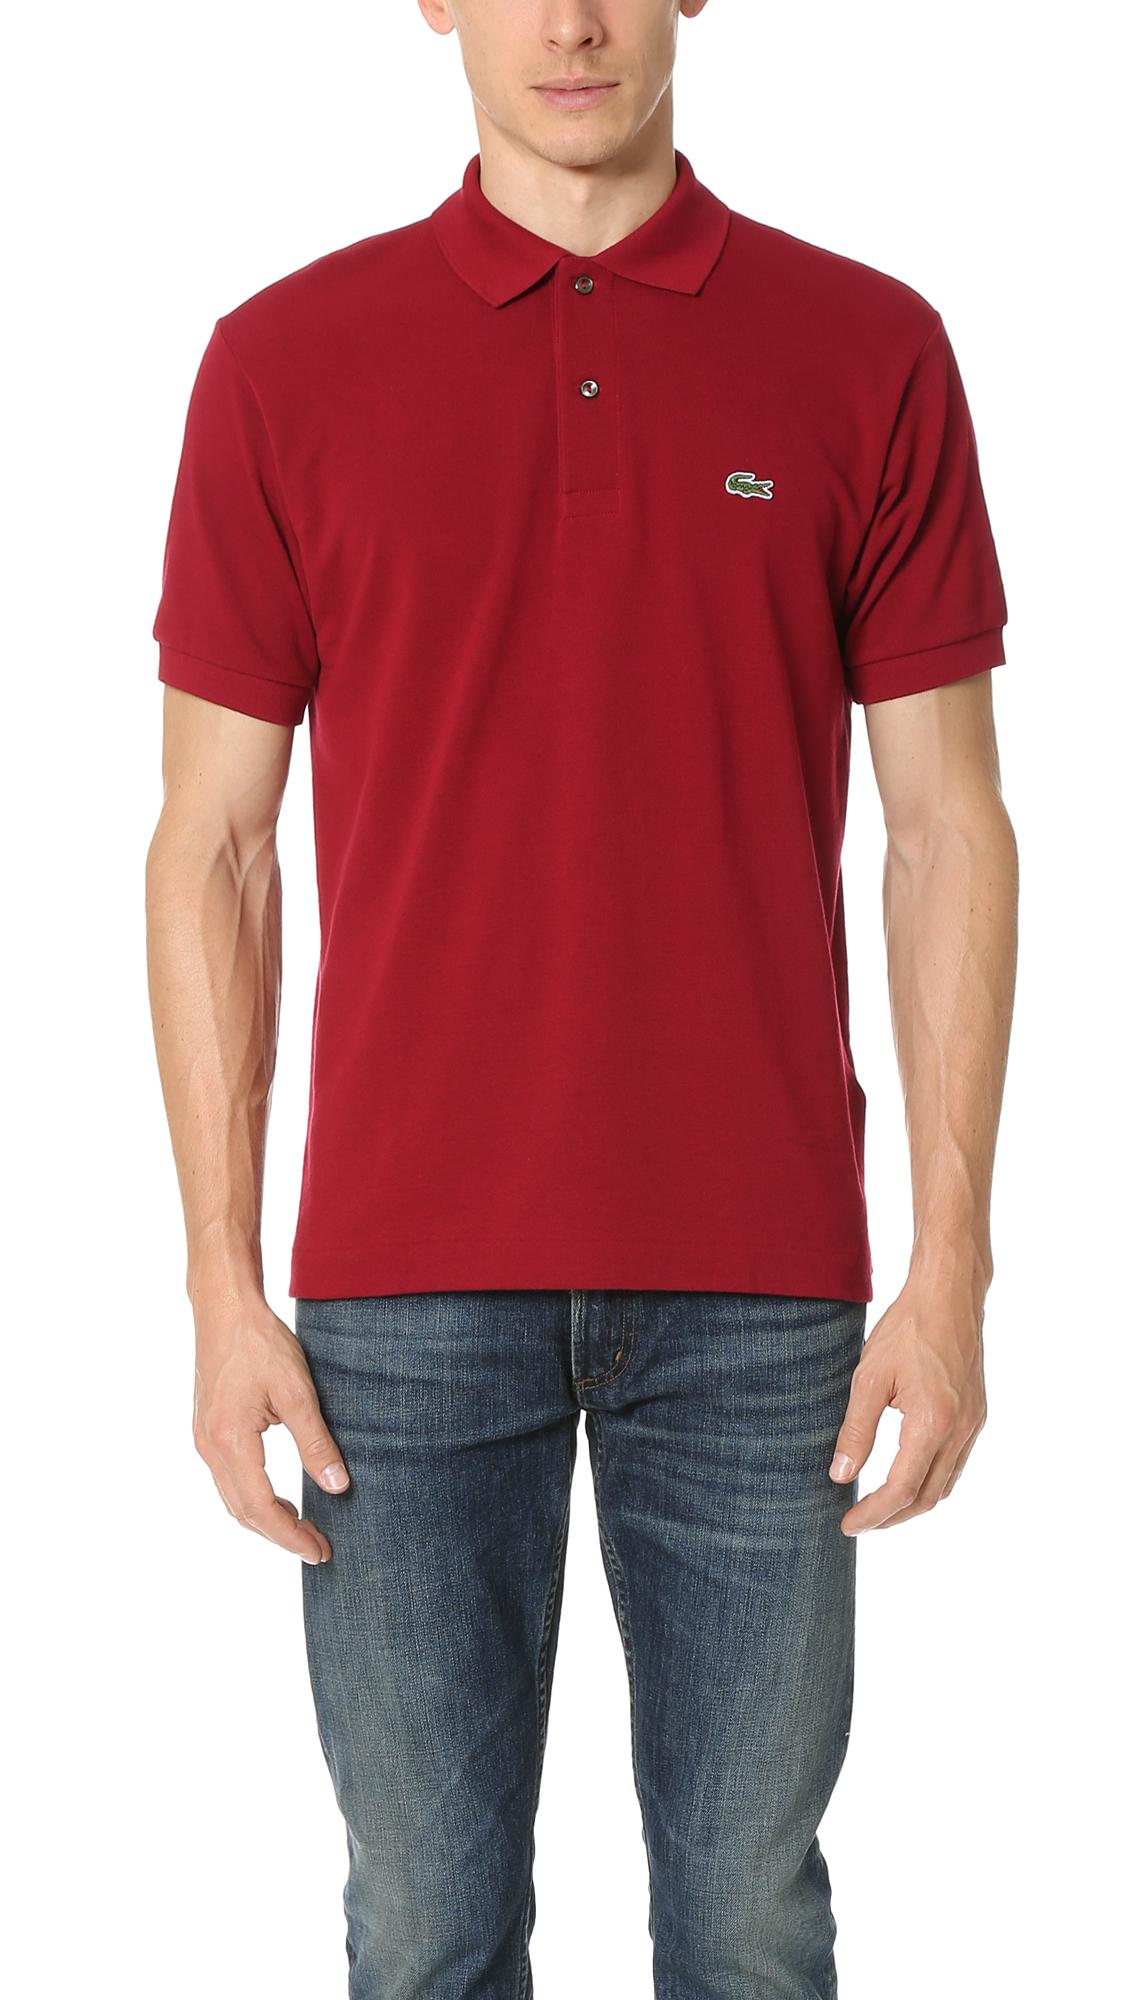 Lacoste short sleeve classic polo shirt in pink for men lyst for Short sleeve lacoste shirt